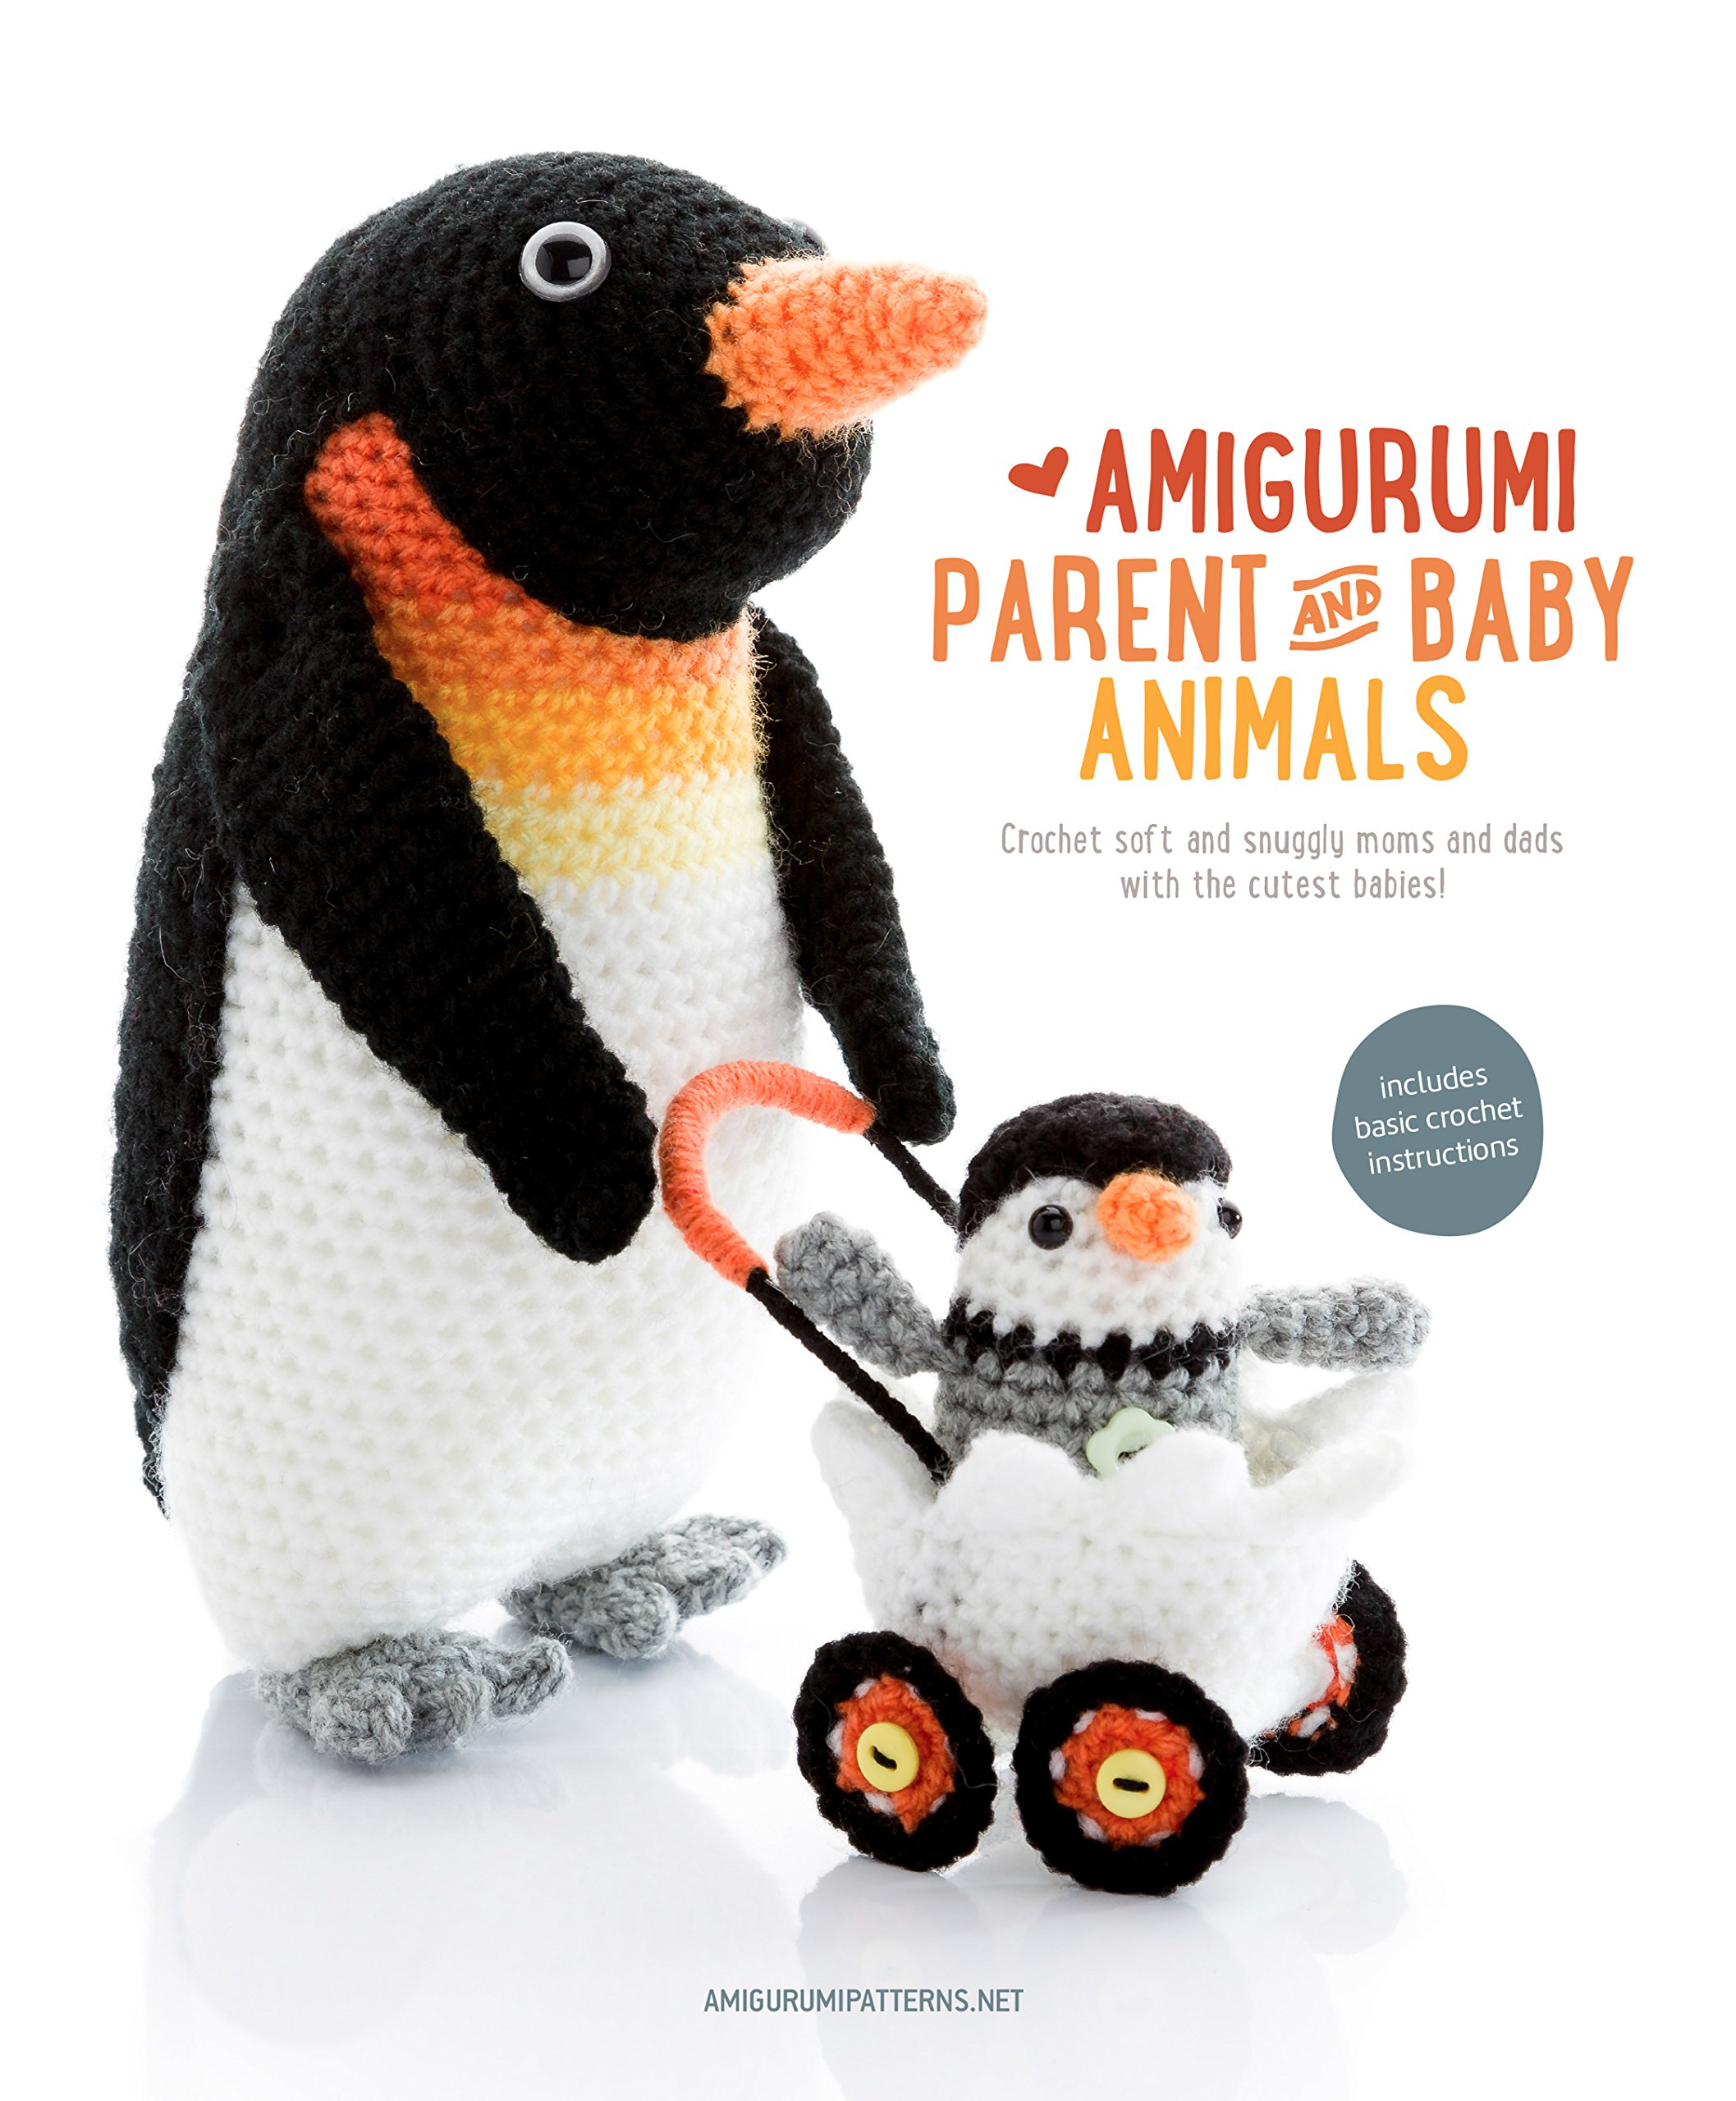 Amigurumi Parent And Baby Animals Crochet Soft And Snuggly Moms And